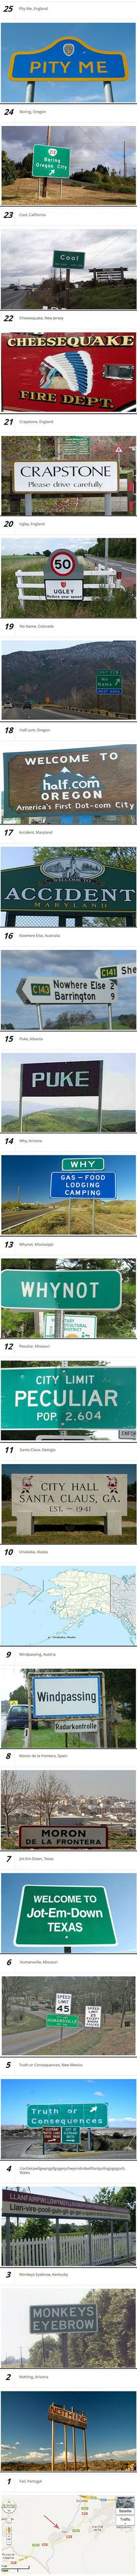 Here are some funny and strange city names you will not believe actually exist.